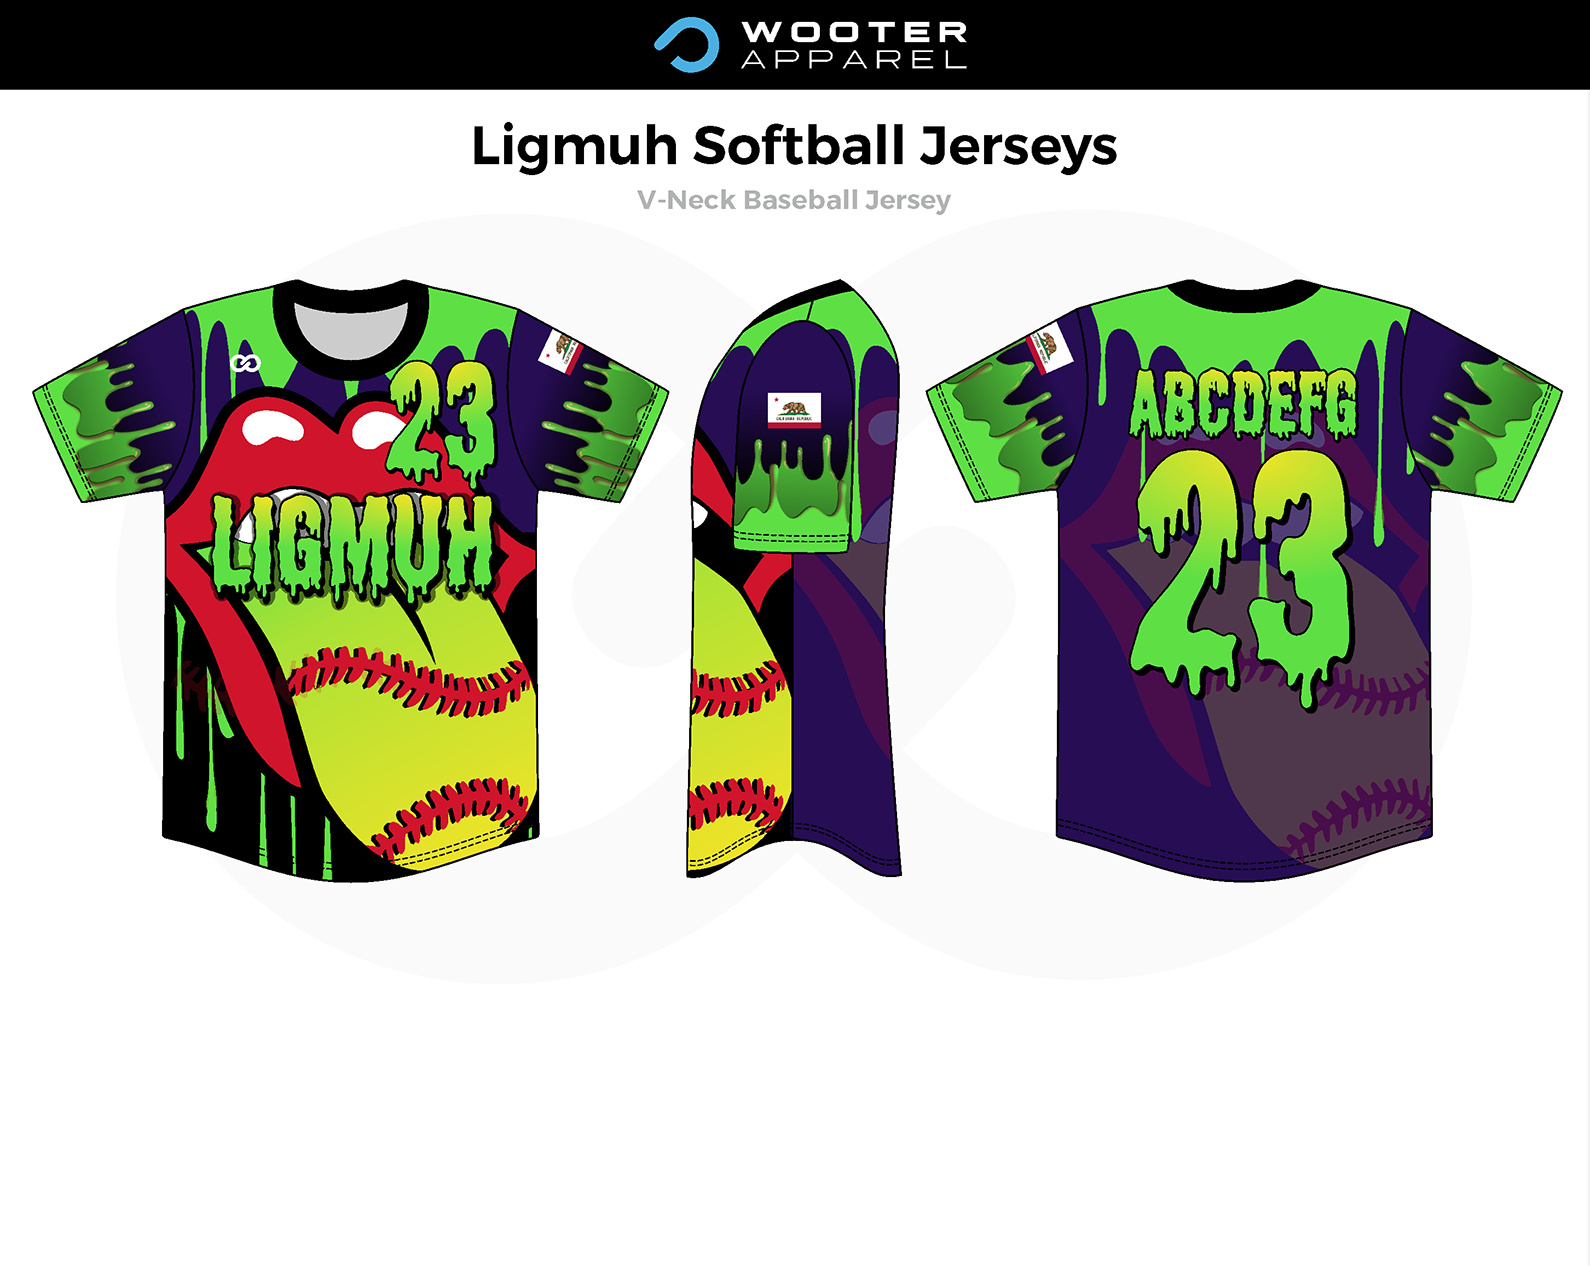 2018-10-04 Ligmuh Softball Jerseys.png